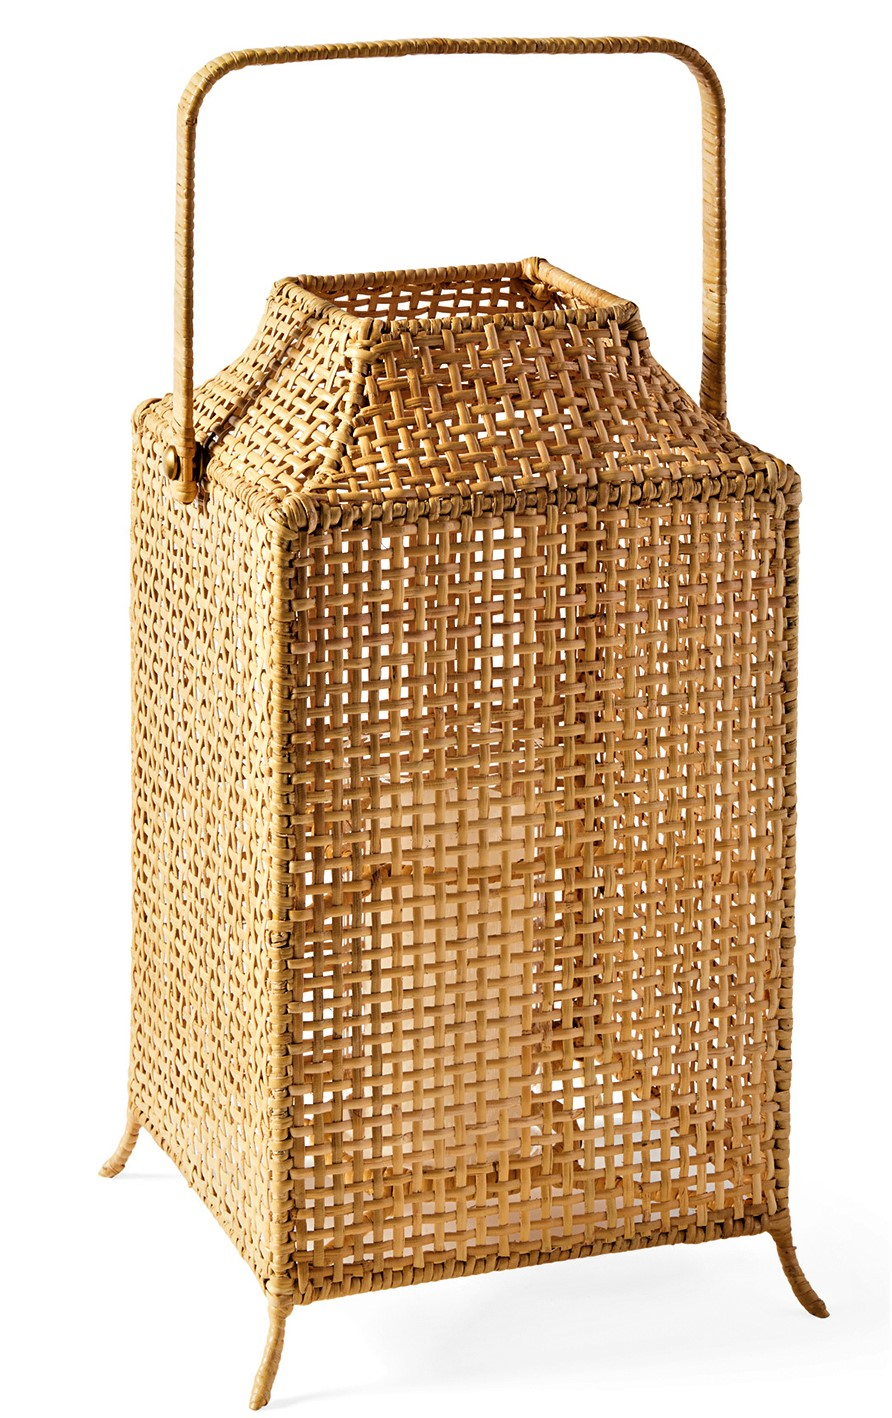 Hand woven lantern home decor cropped.jpg